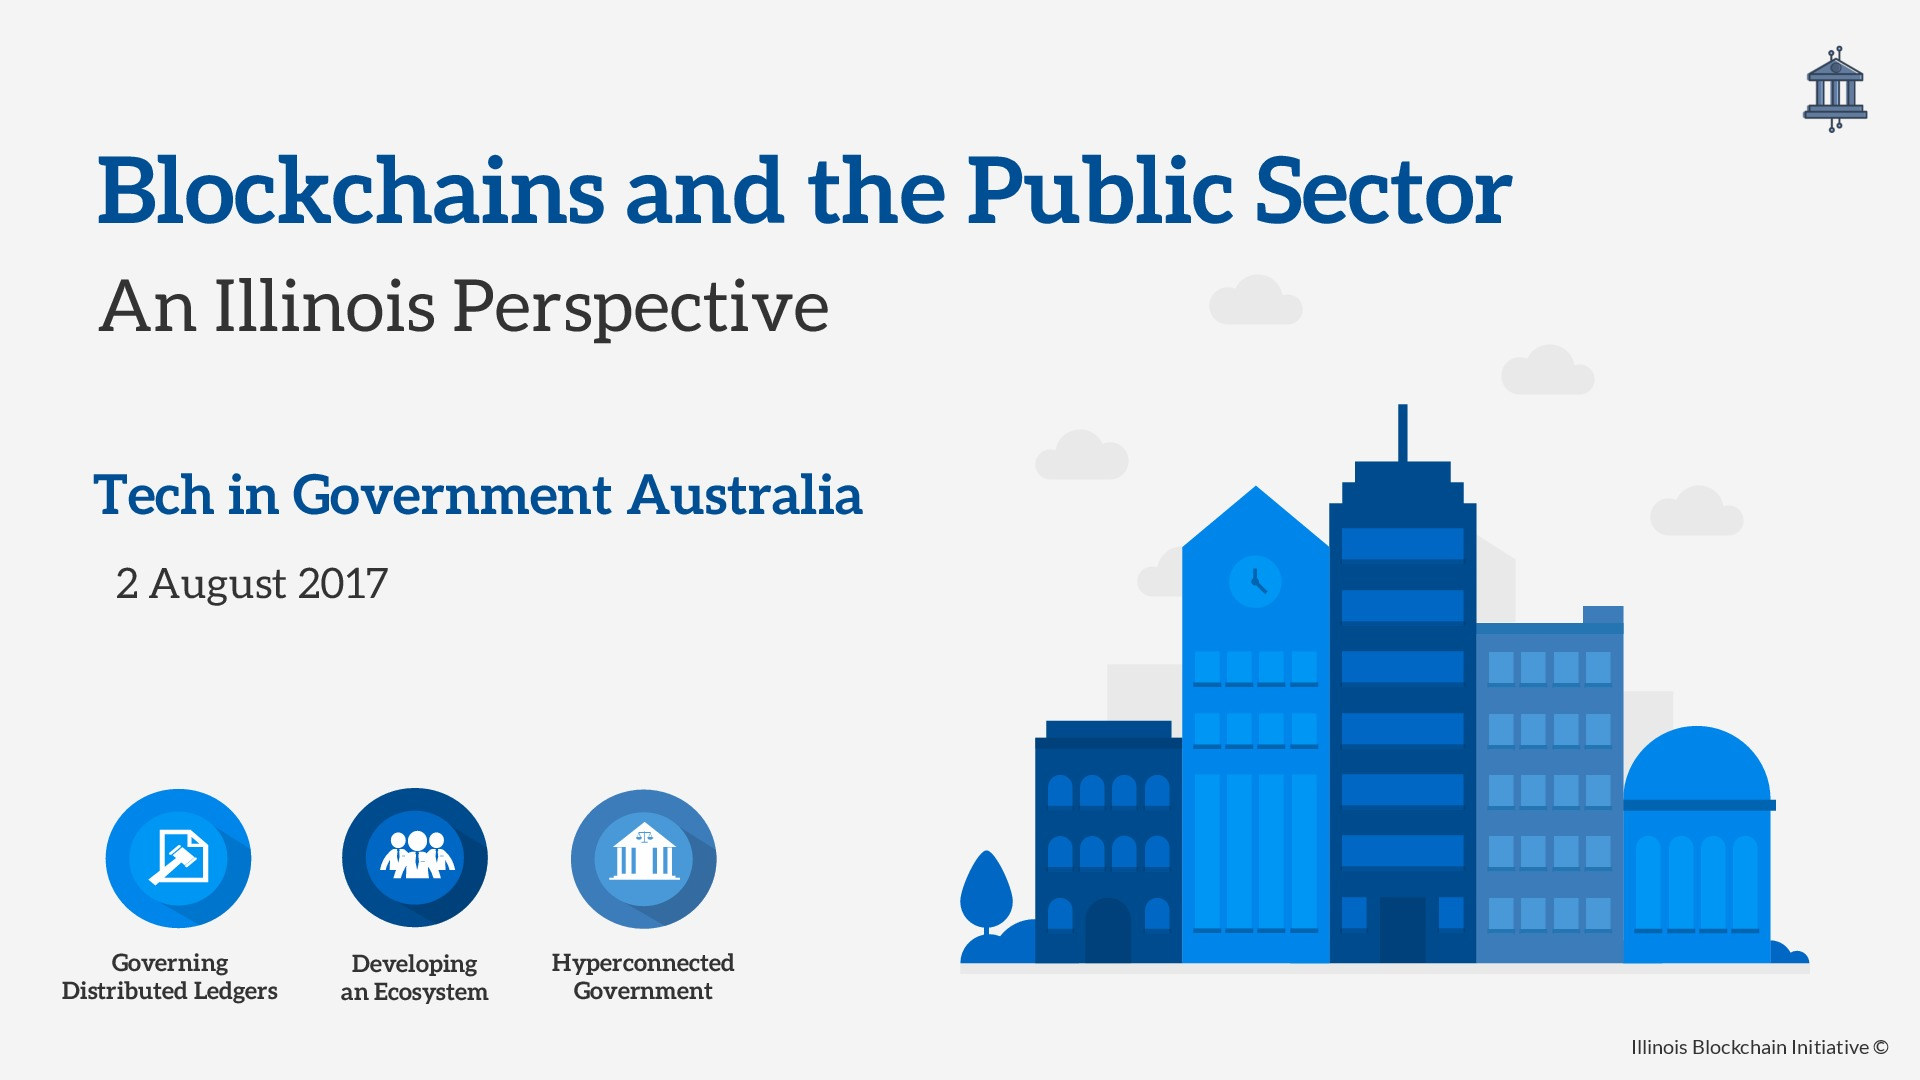 Blockchains & the Public Sector Australia